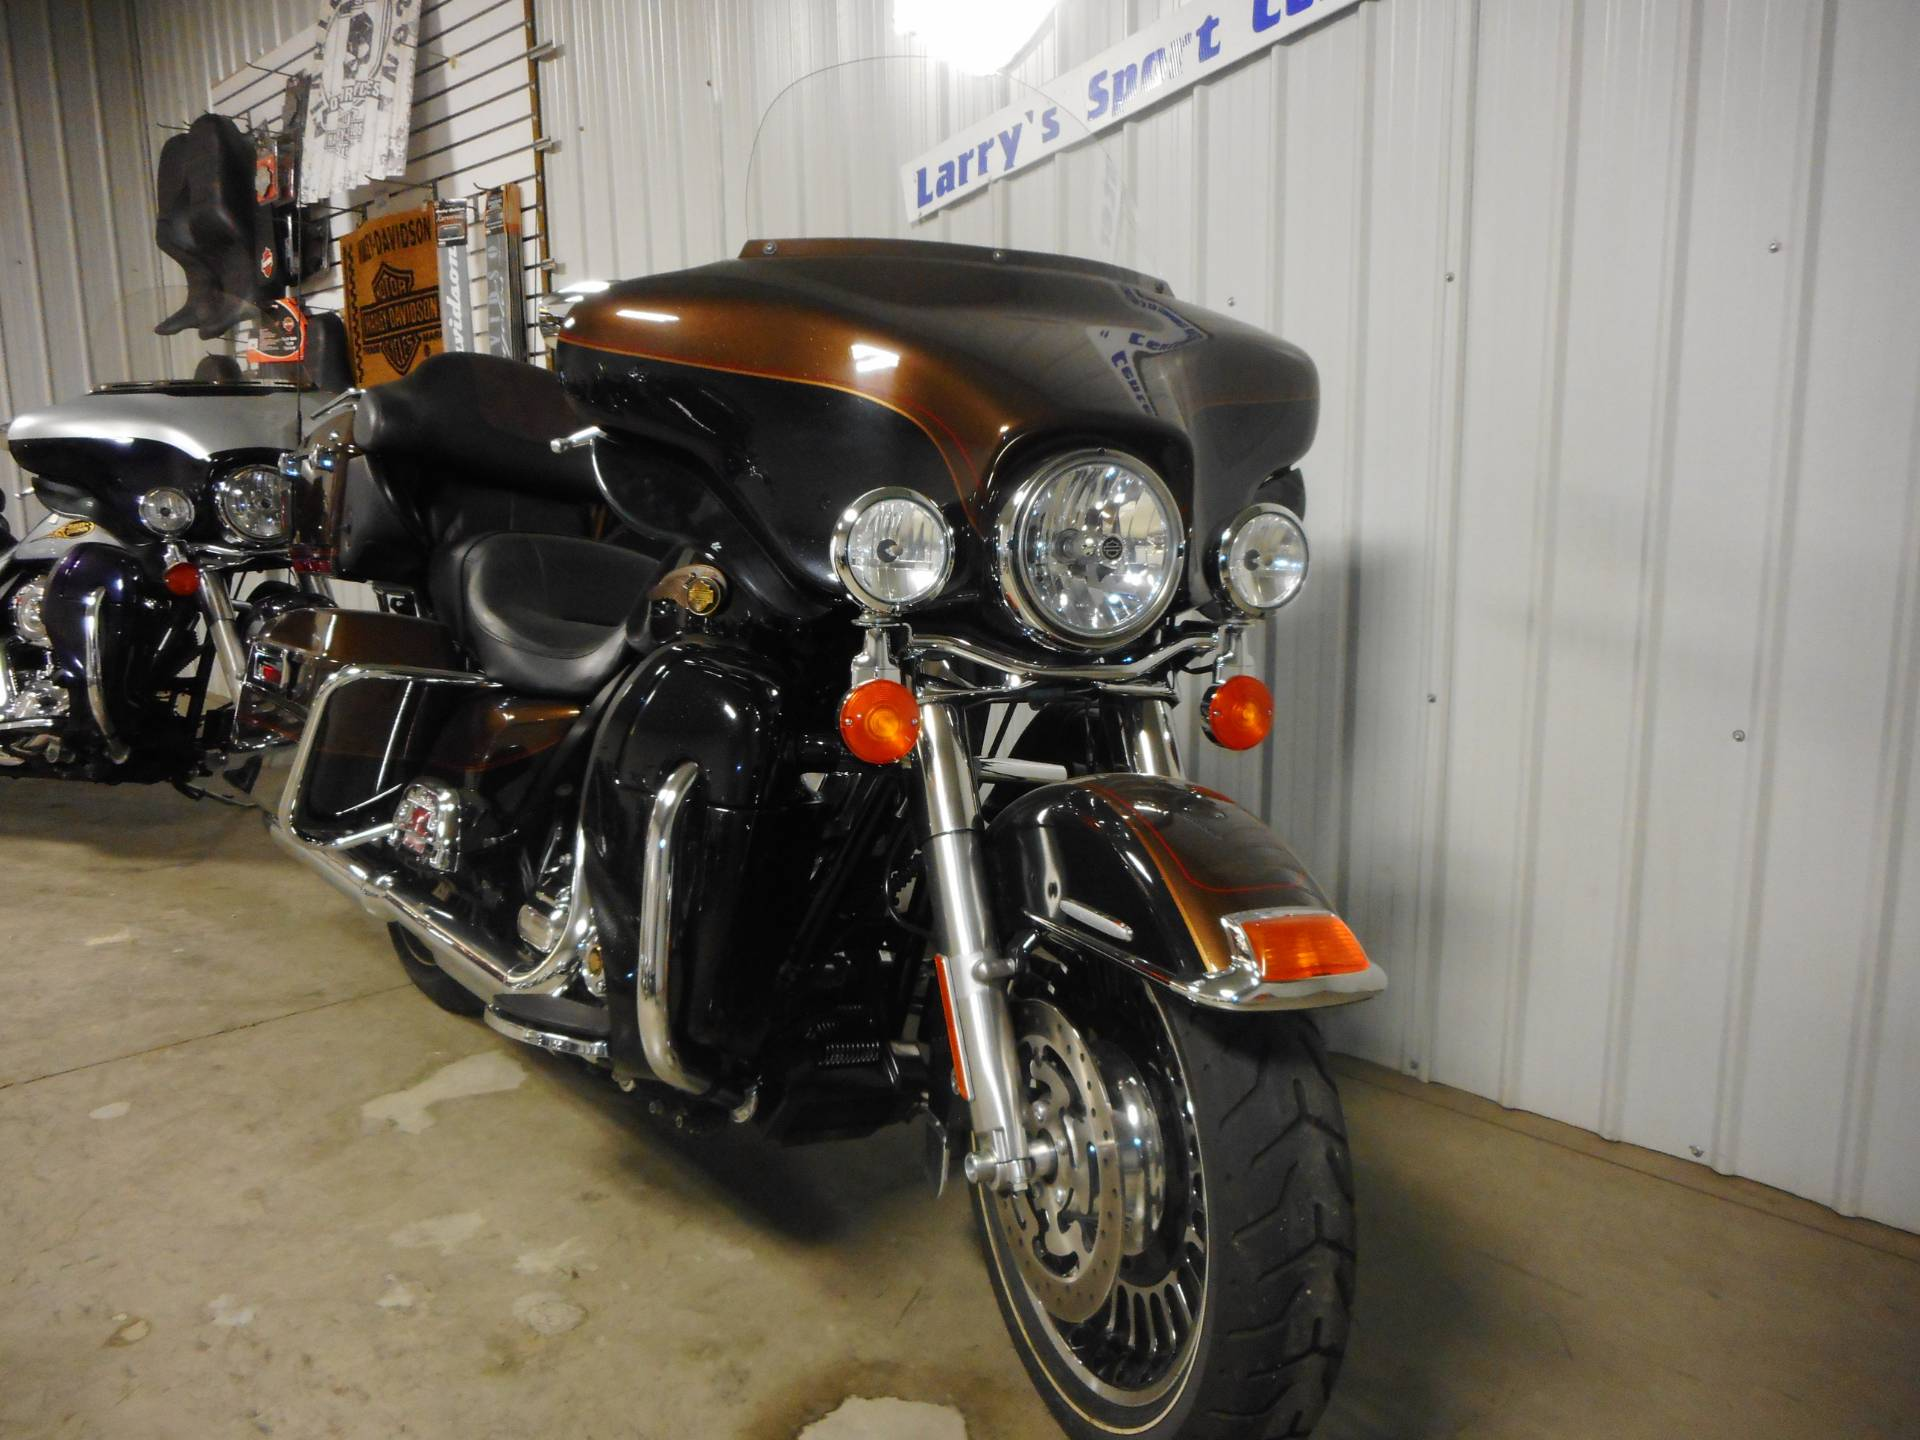 2013 Harley-Davidson Electra Glide® Ultra Limited 110th Anniversary Edition in Galeton, Pennsylvania - Photo 2